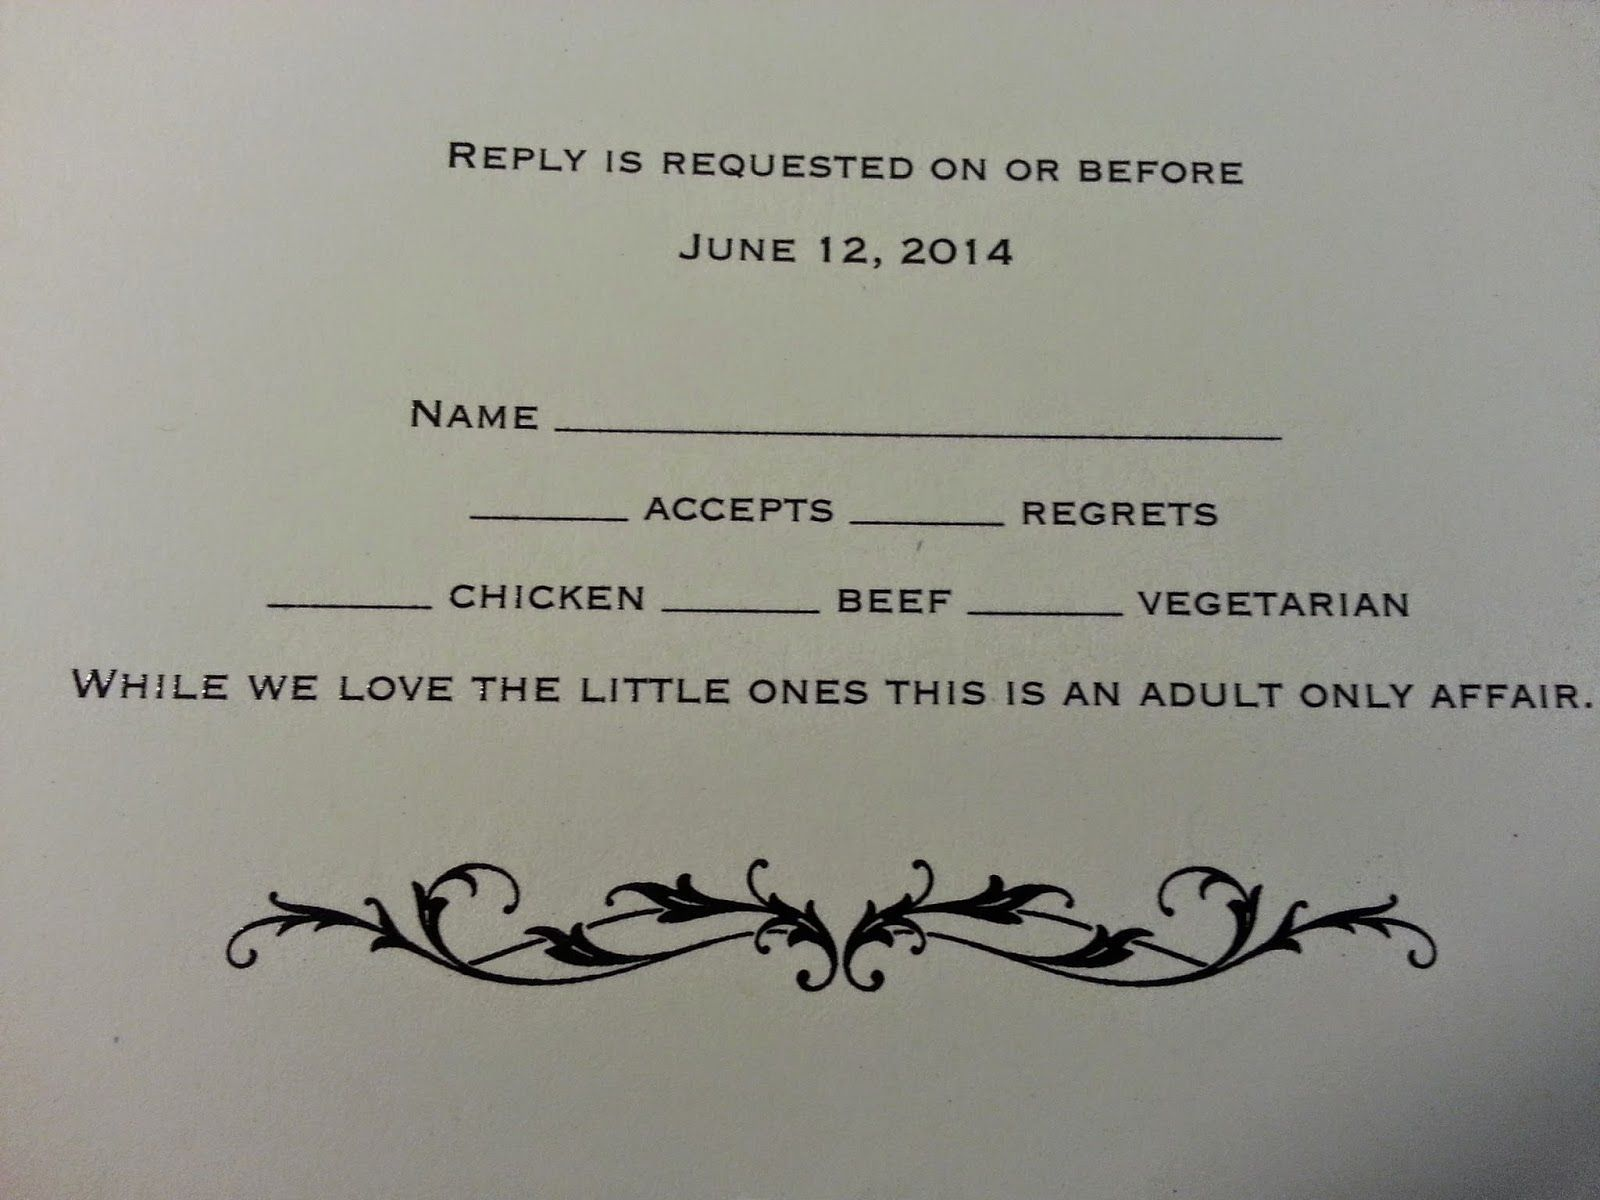 reception only wedding invitations The scorns of a Adult Only wedding reception